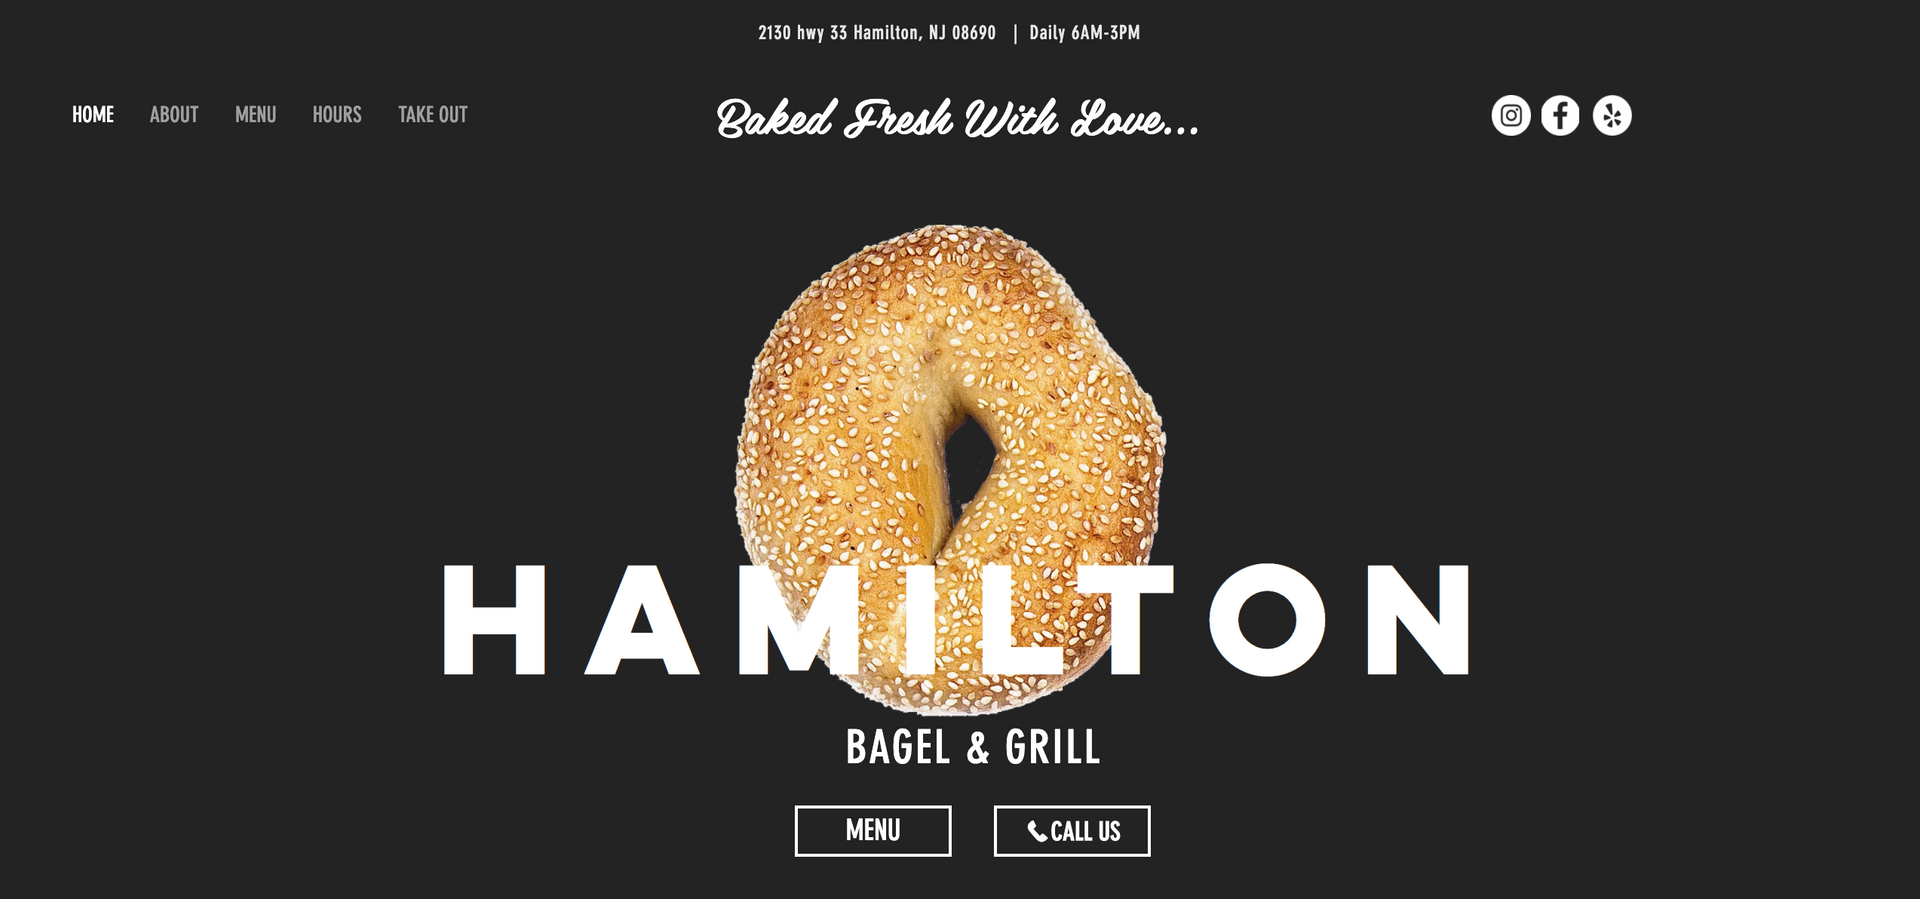 Hamilton Bagel and Grill